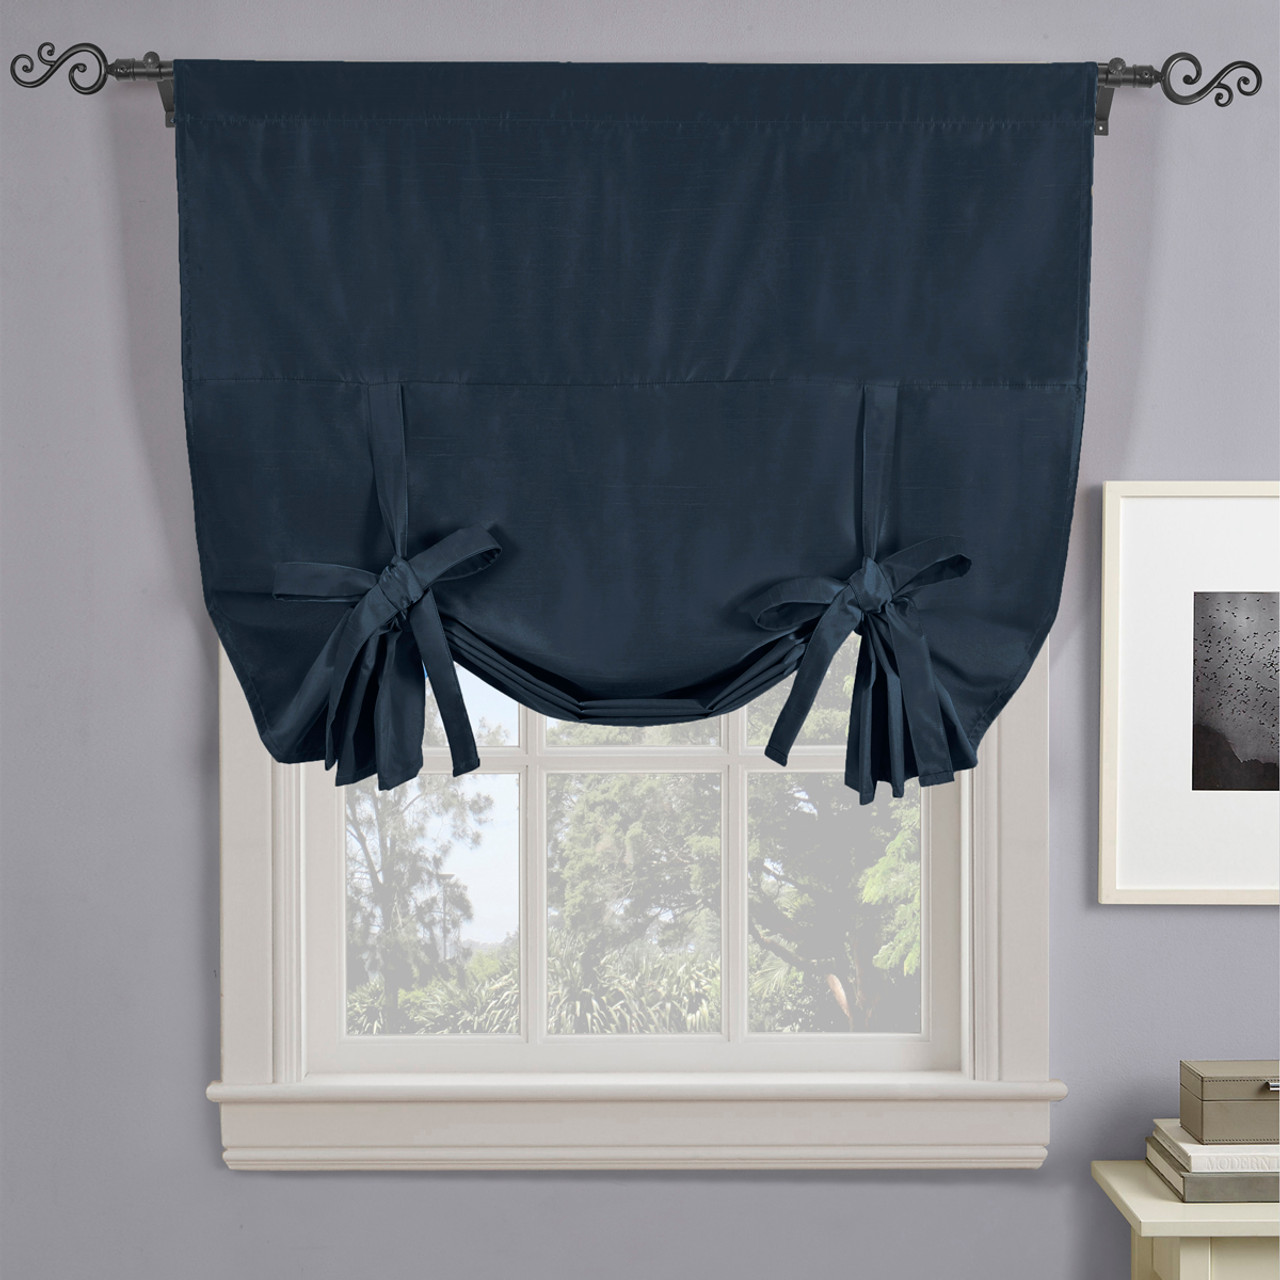 valance tie up curtains the and designs decors curtain ideas patterns bonding